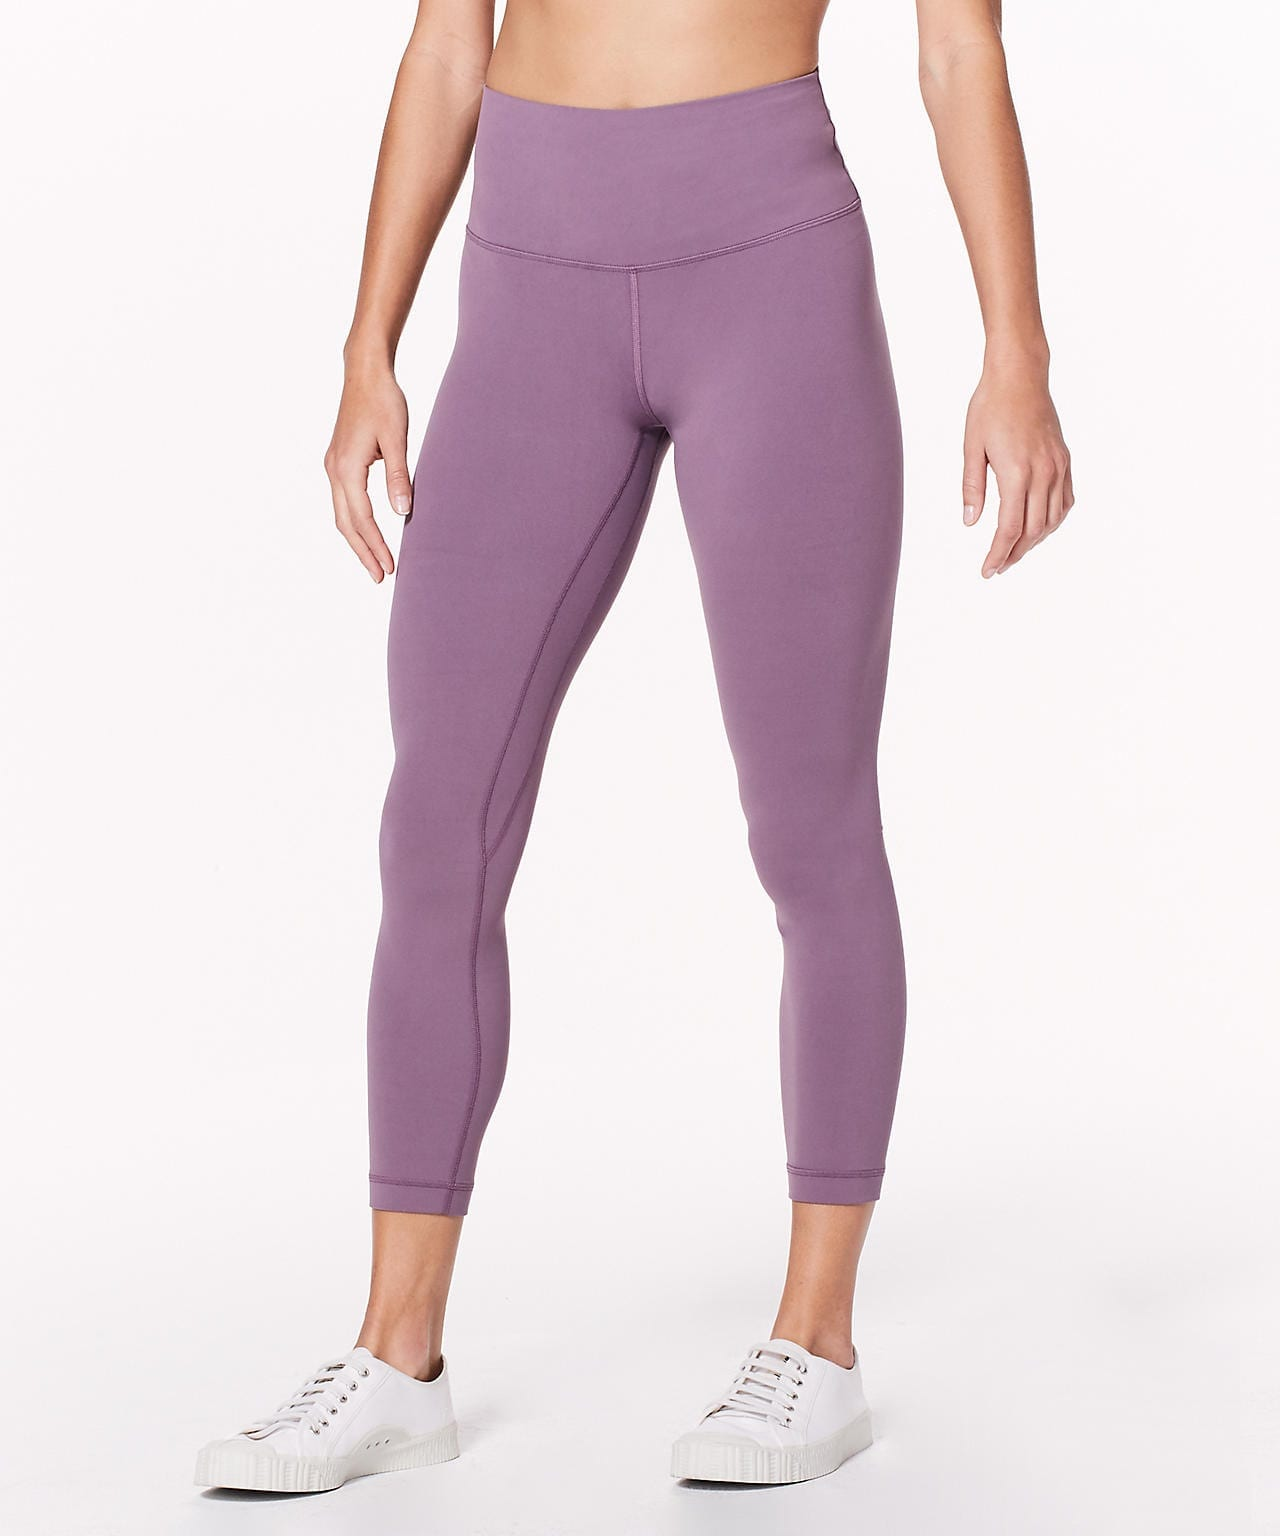 Smoked Mulberry Align Pant II